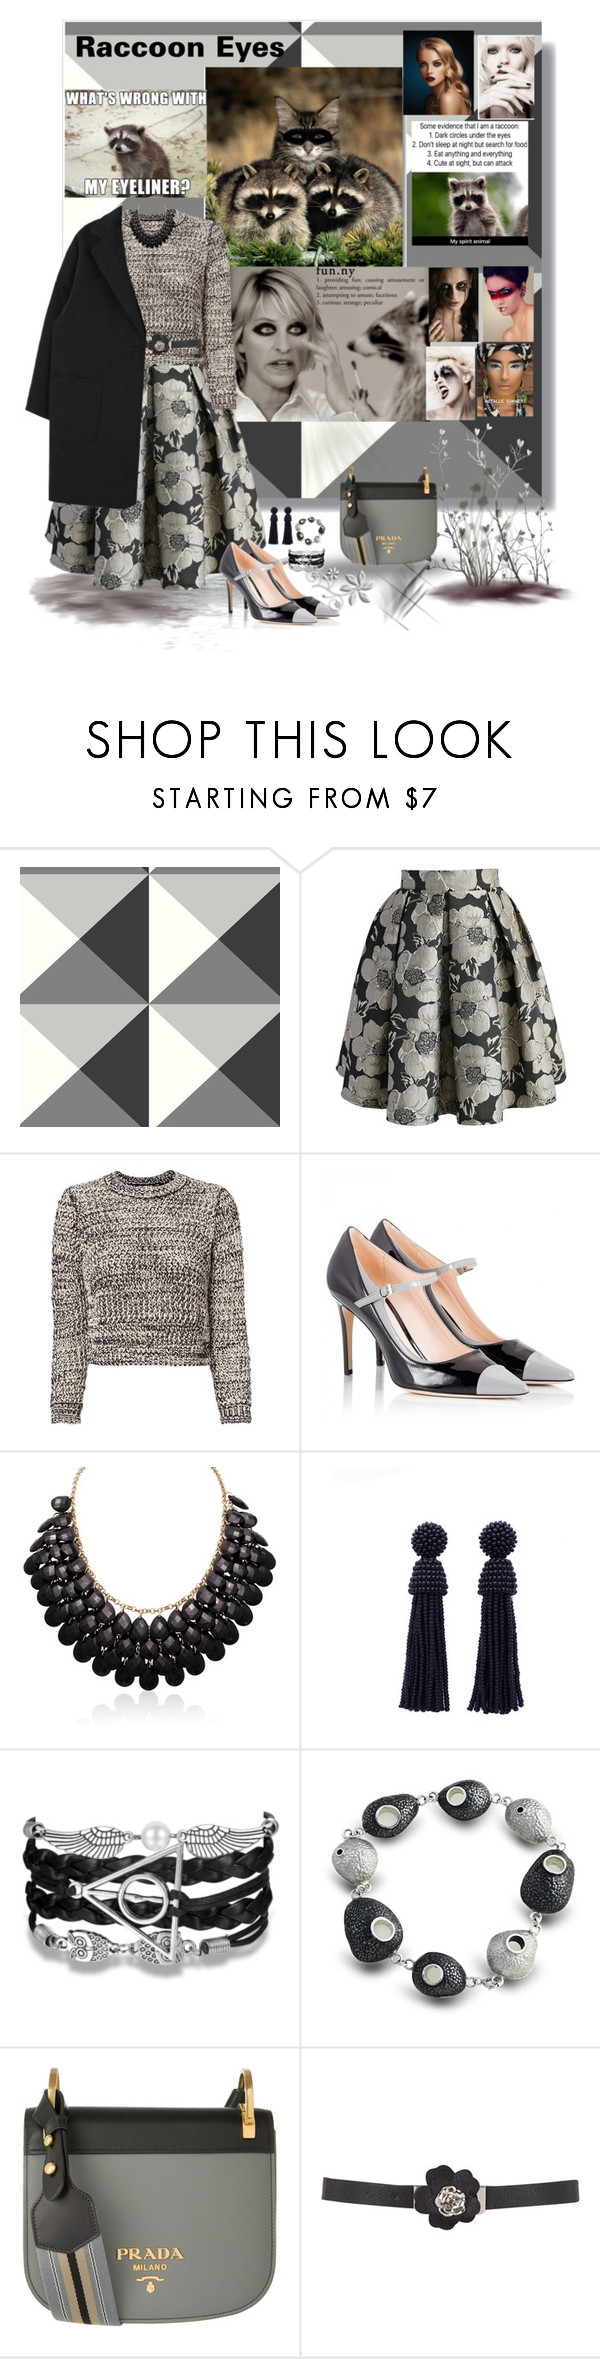 """""""Makeup ideas and an outfit to match"""" by deborah-518 ❤ liked on Polyvore featuring Calvin Klein, Chicwish, 10 Crosby Derek Lam, Fratelli Karida, Adoriana and Prada"""